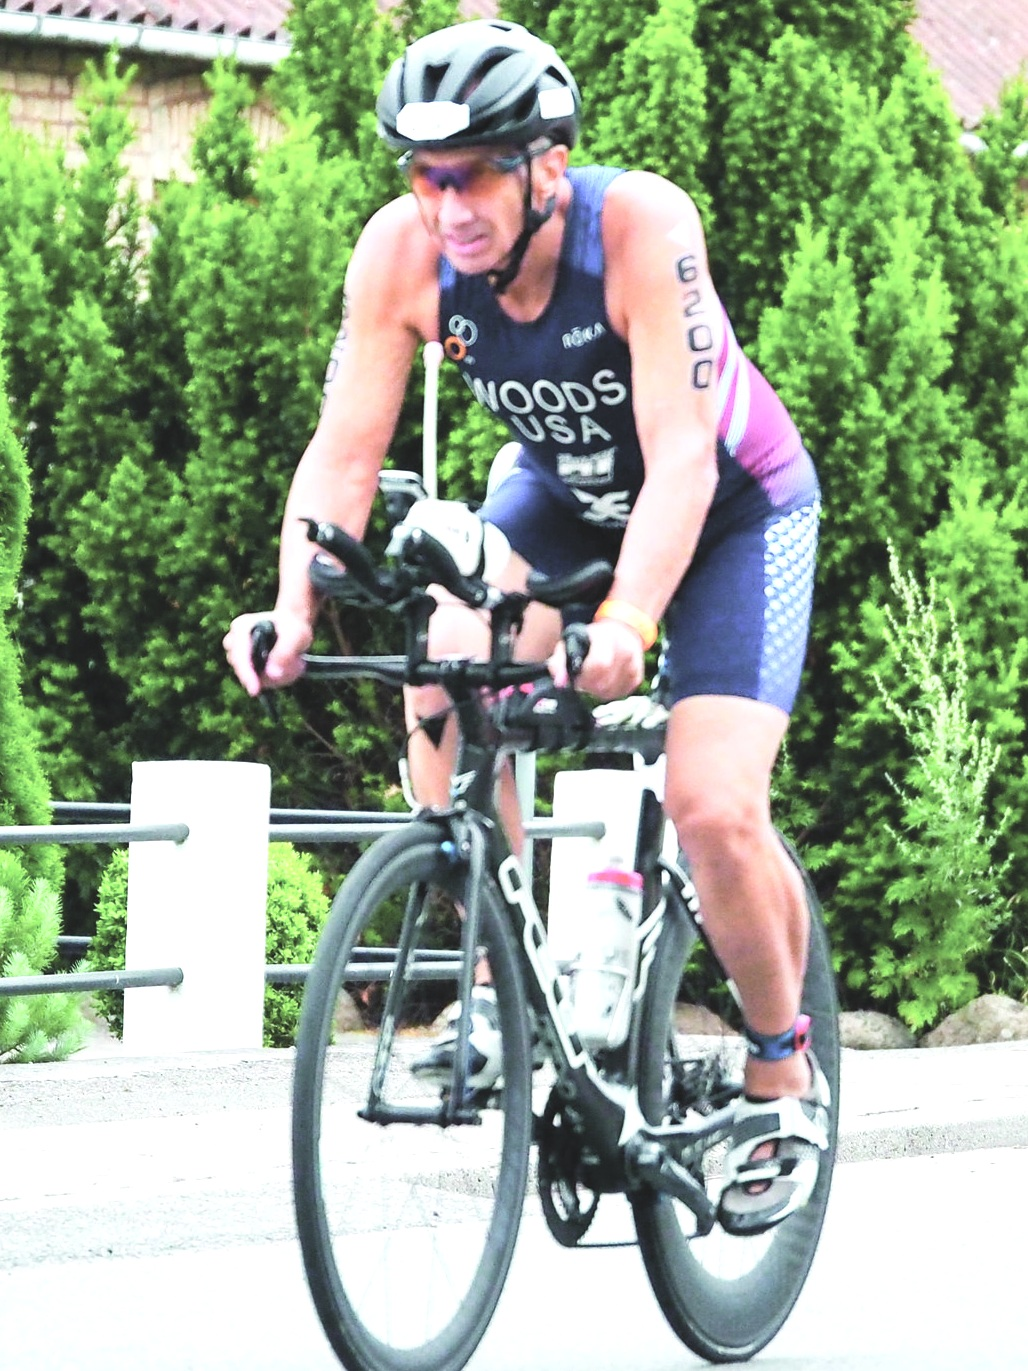 Lee riding his bike during the ITU Aquabike World Championships.